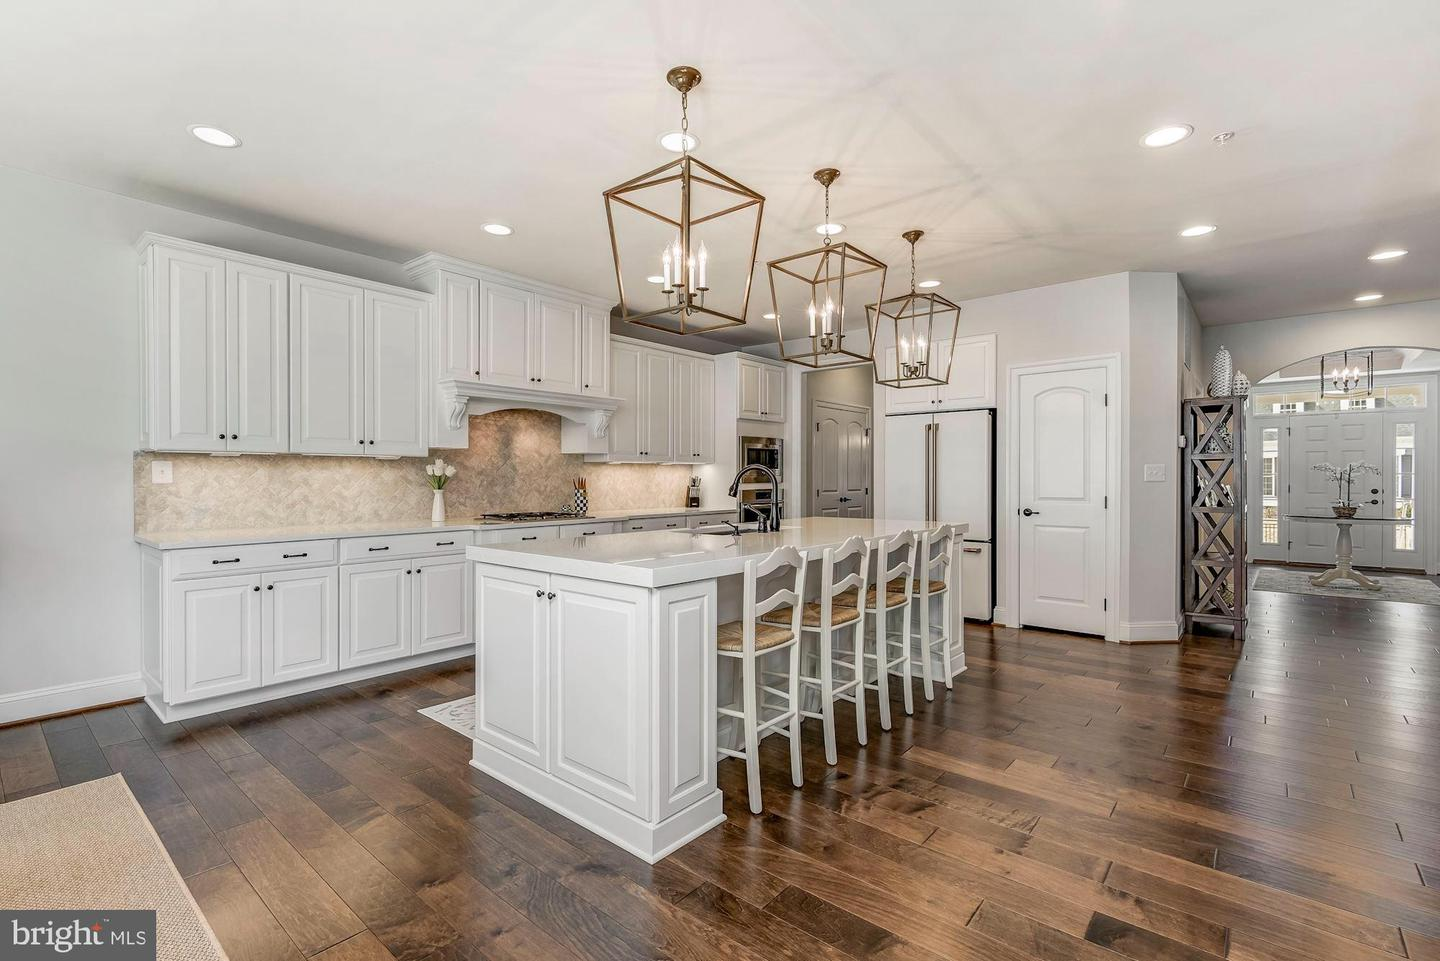 11693 FEDERAL ST, Fulton, Maryland 20759, 4 Bedrooms Bedrooms, ,4 BathroomsBathrooms,Single Family,For Sale,11693 FEDERAL ST,MDHW291900